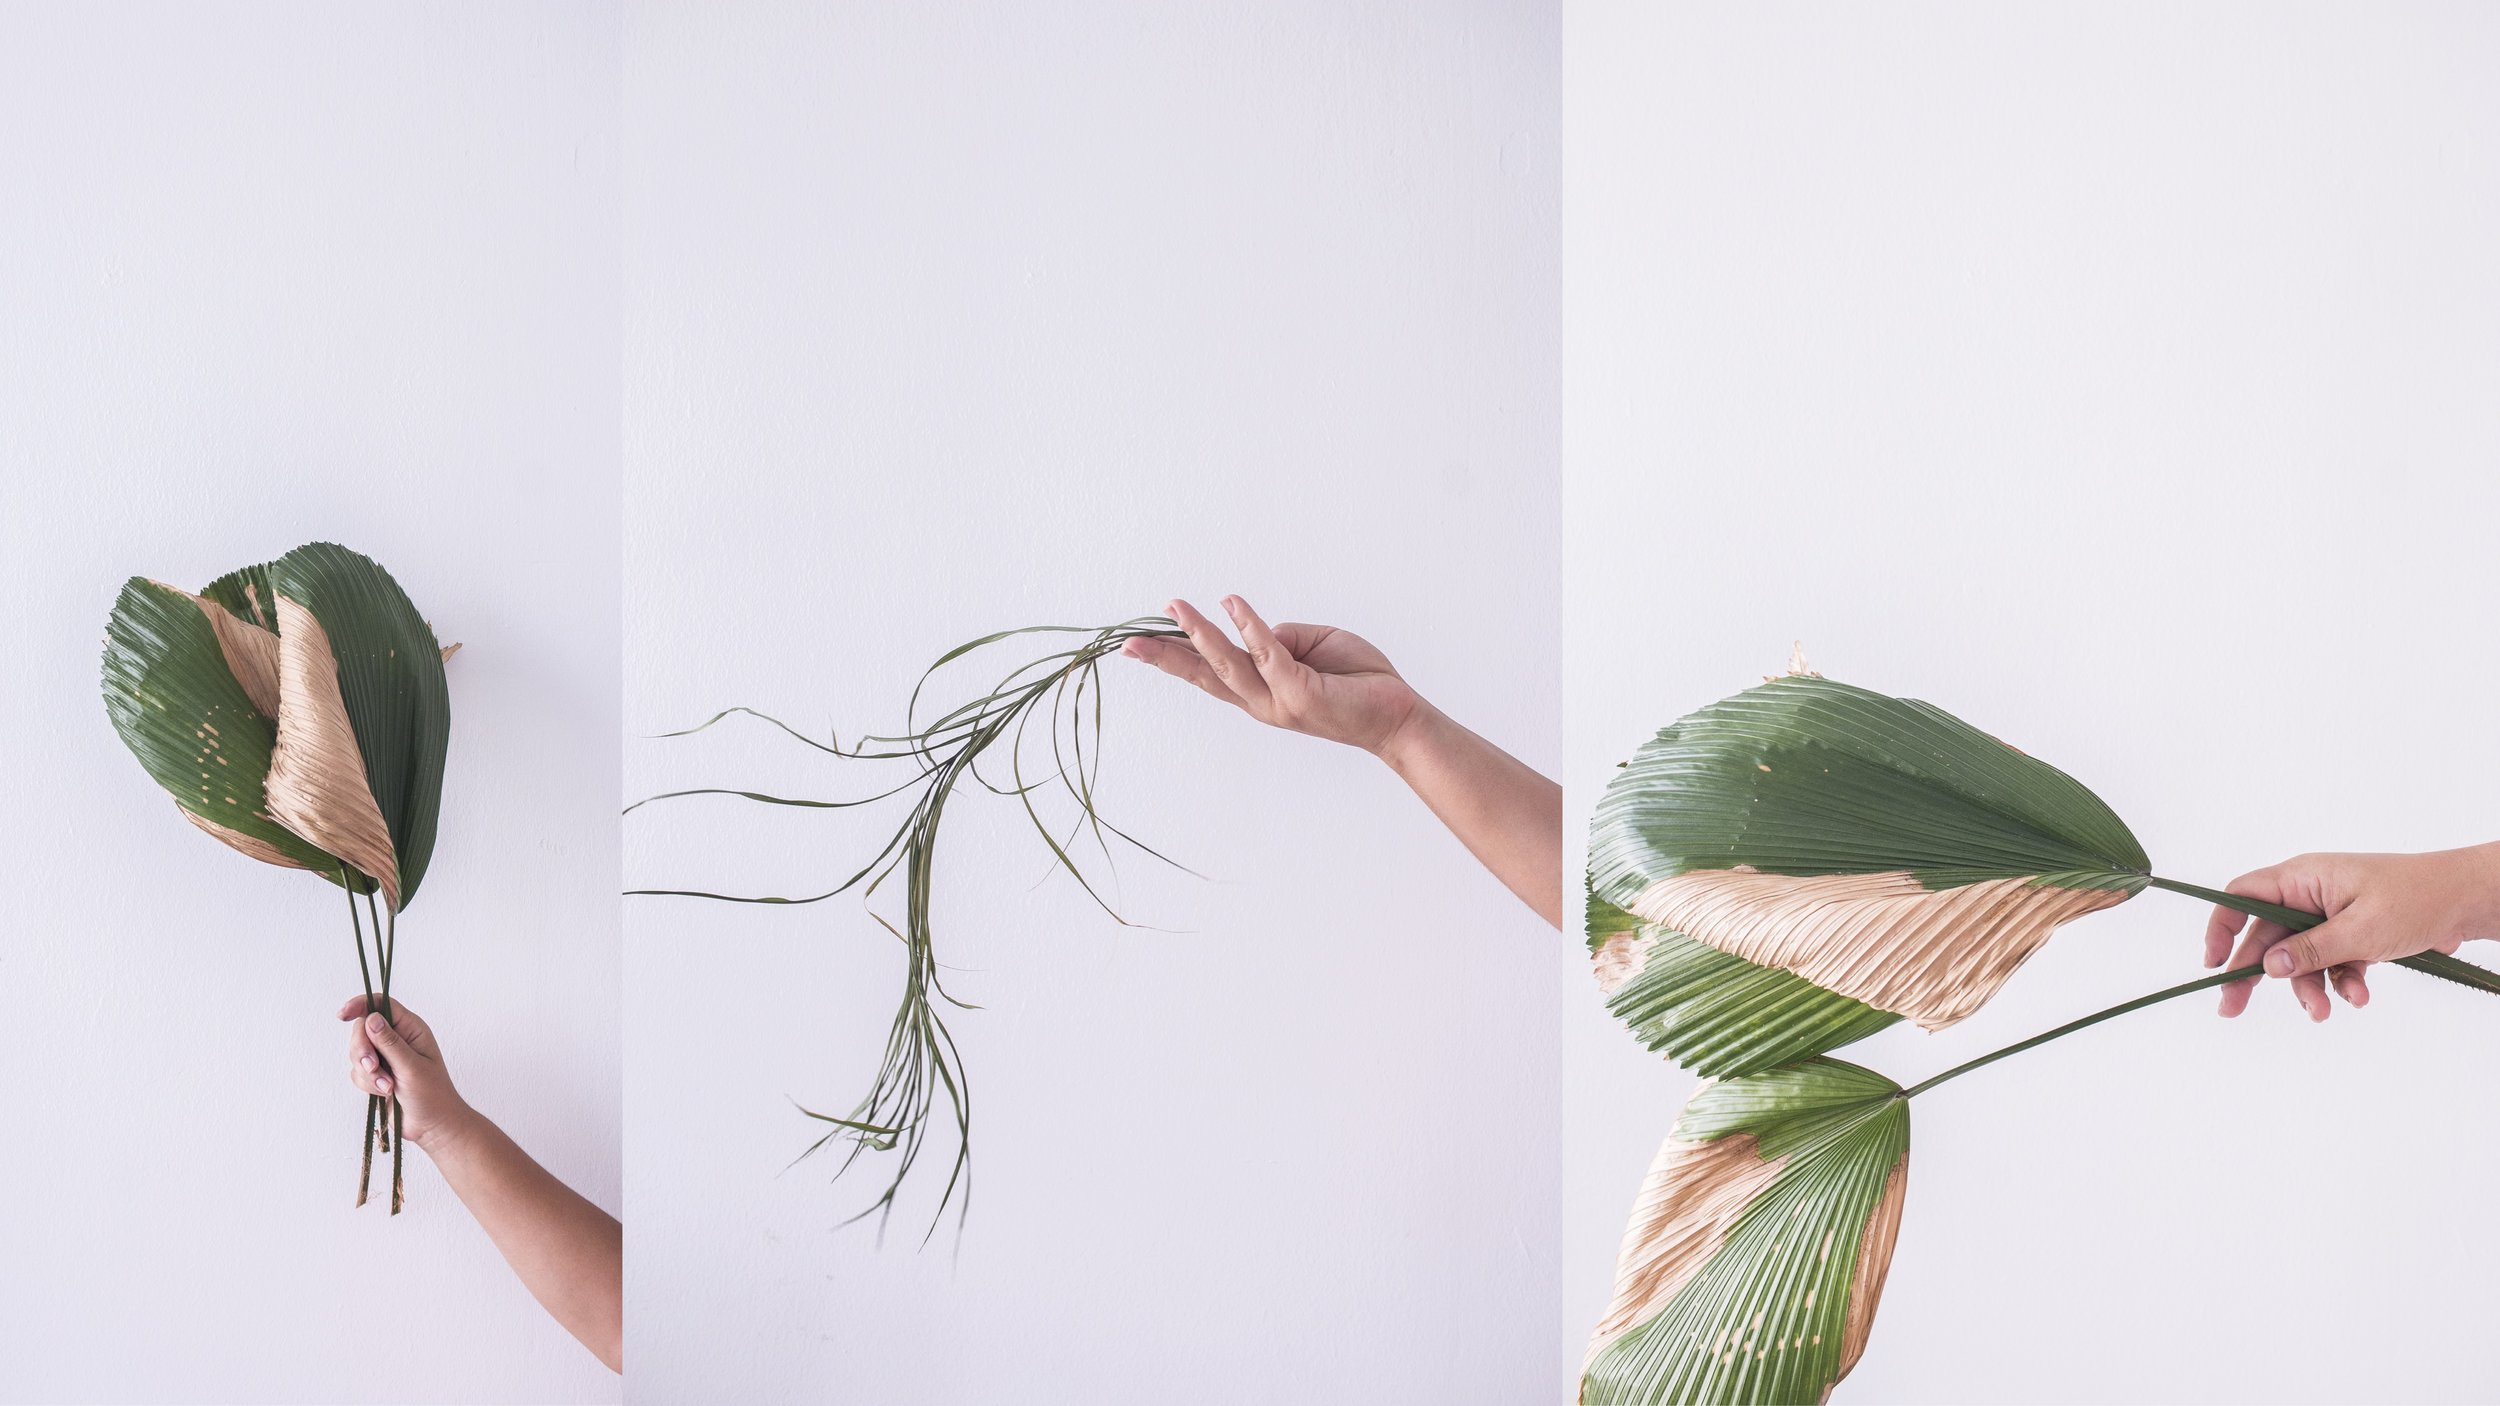 This plant life by Jette